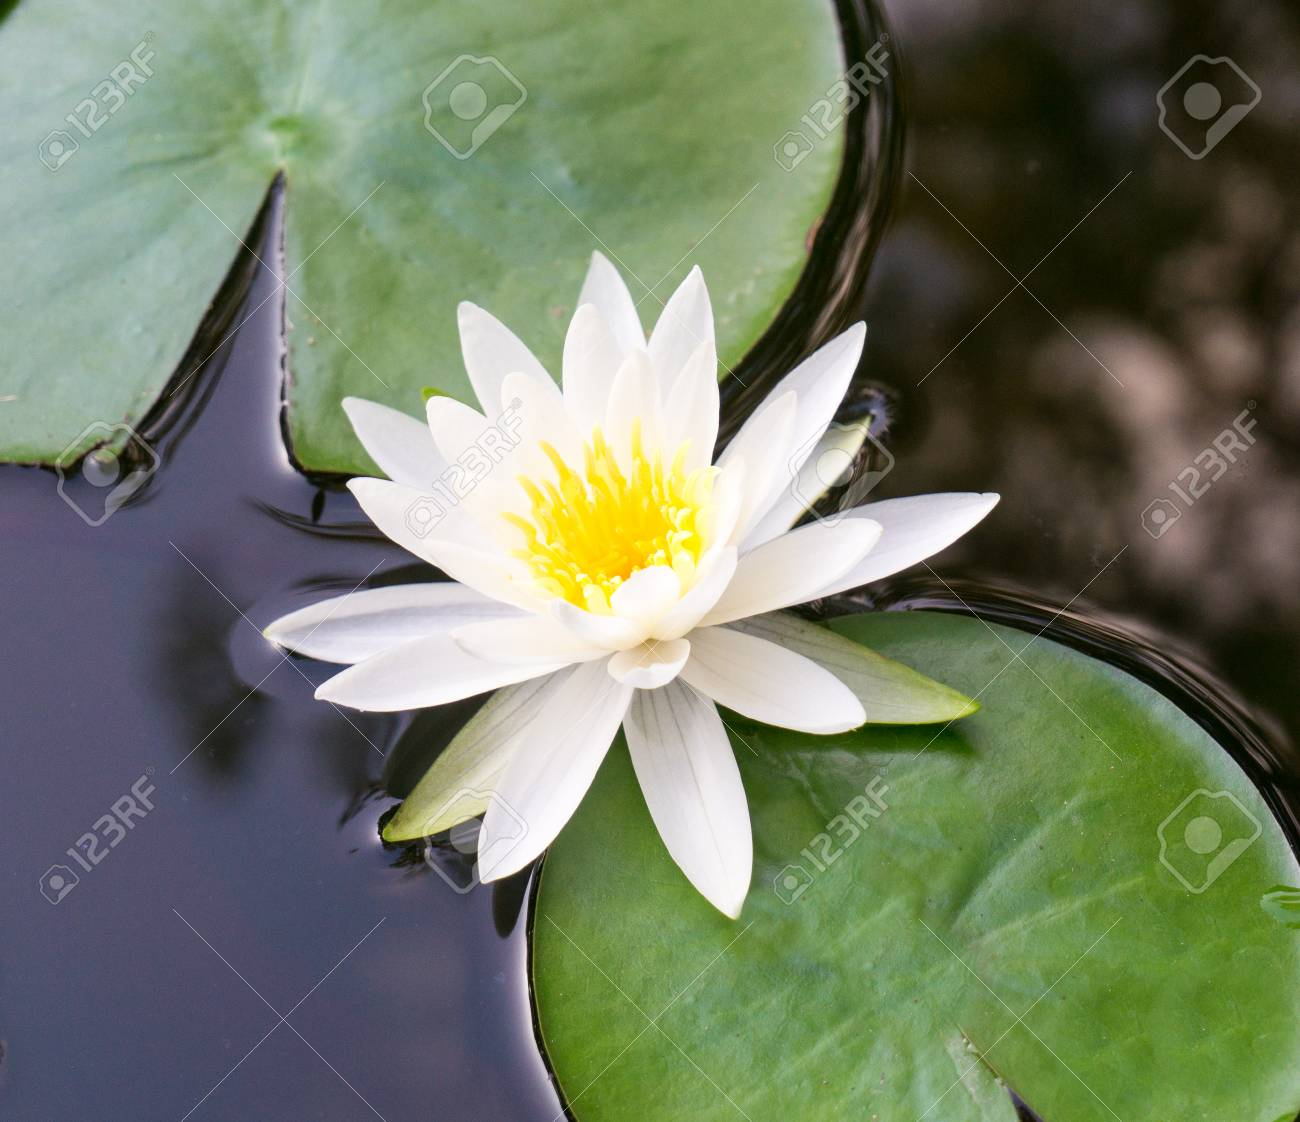 An up close view of a white lotus flower blooming and lily pad an up close view of a white lotus flower blooming and lily pad floating in a izmirmasajfo